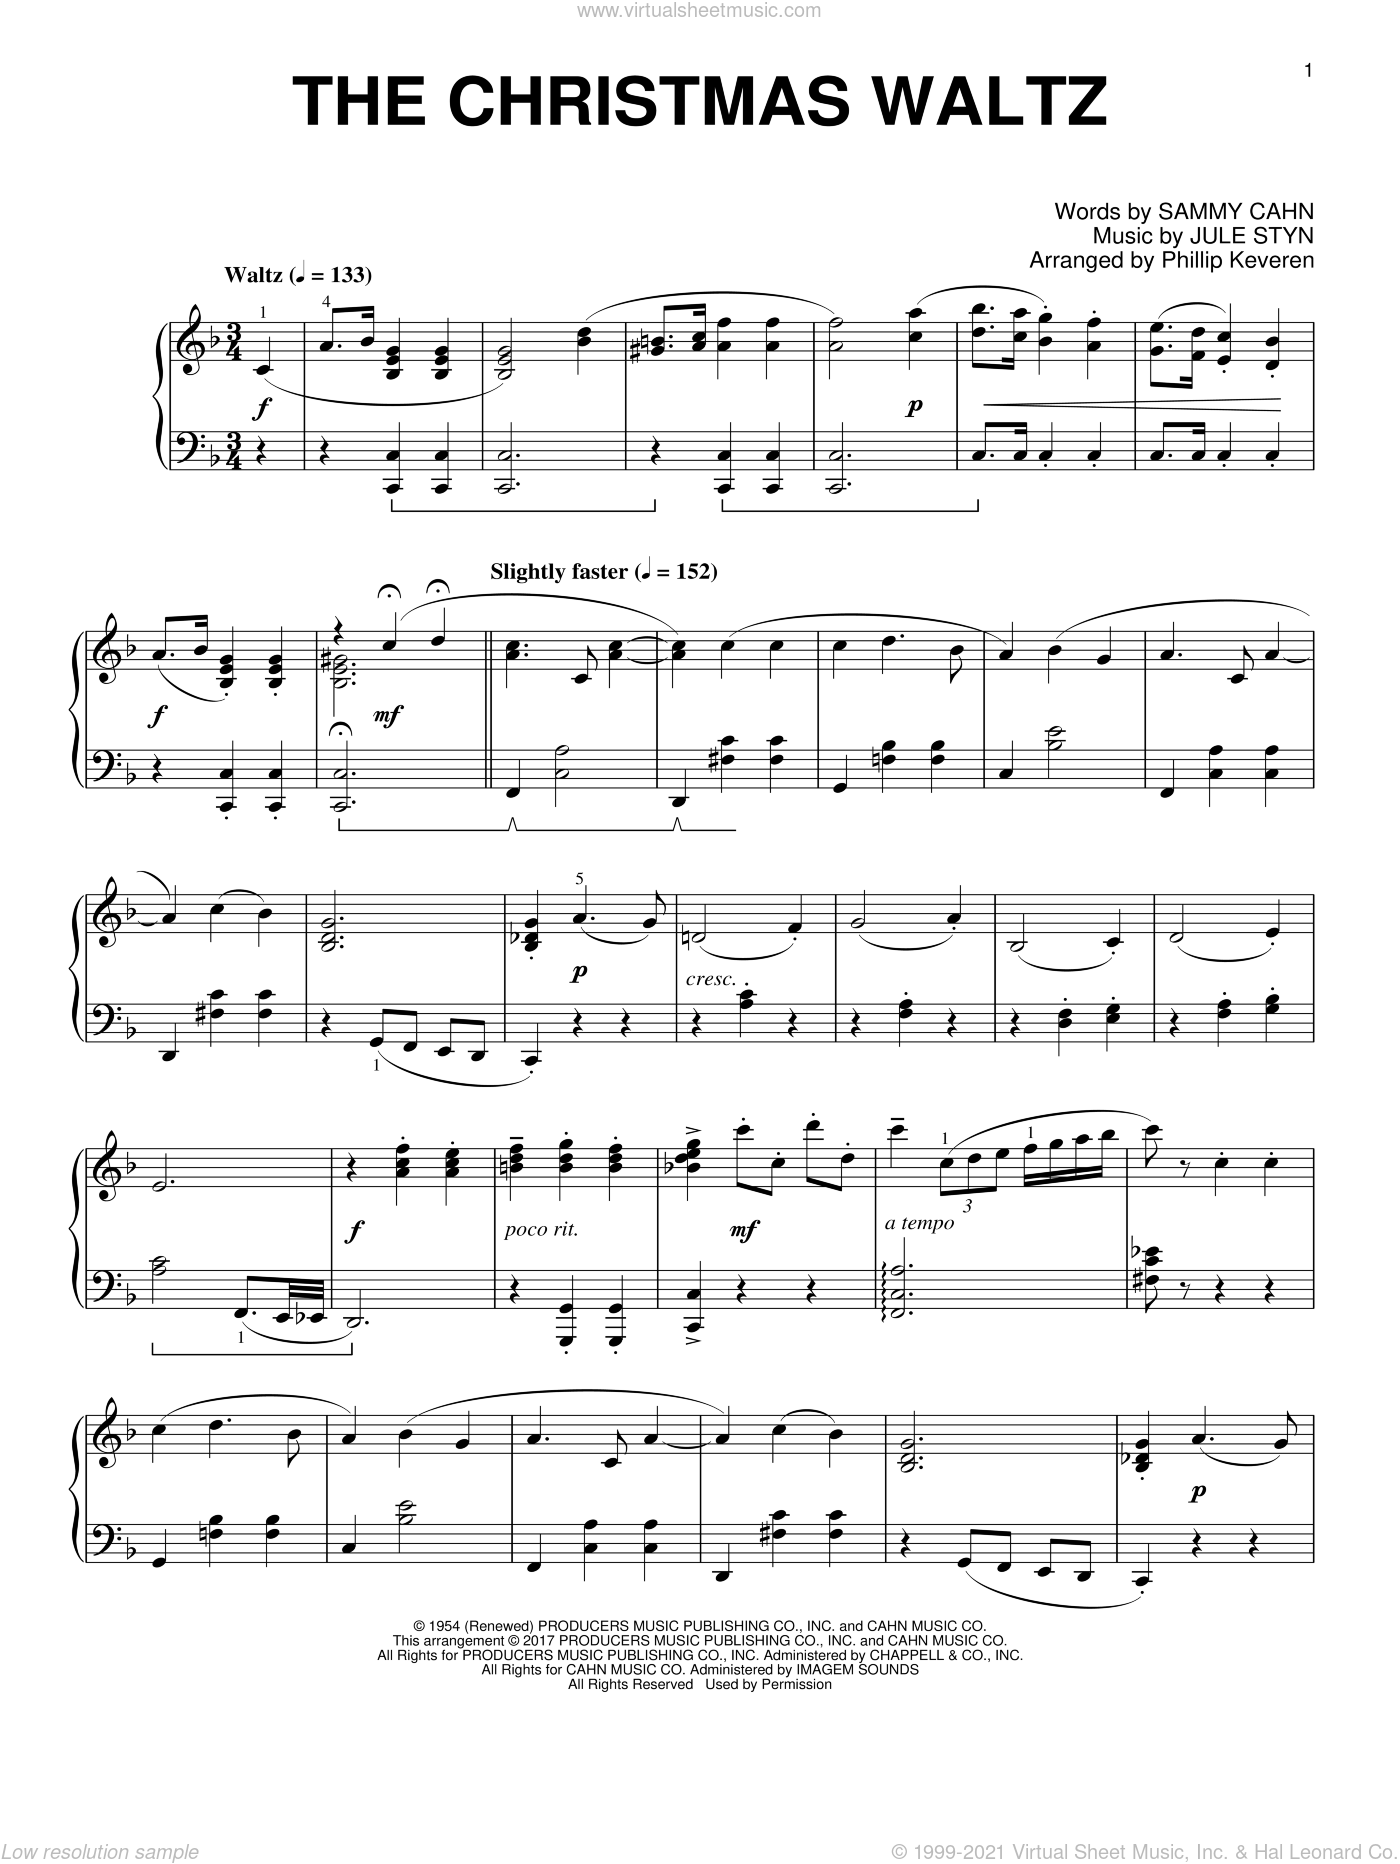 The Christmas Waltz sheet music for piano solo by Sammy Cahn, Phillip Keveren and Jule Styne, intermediate skill level